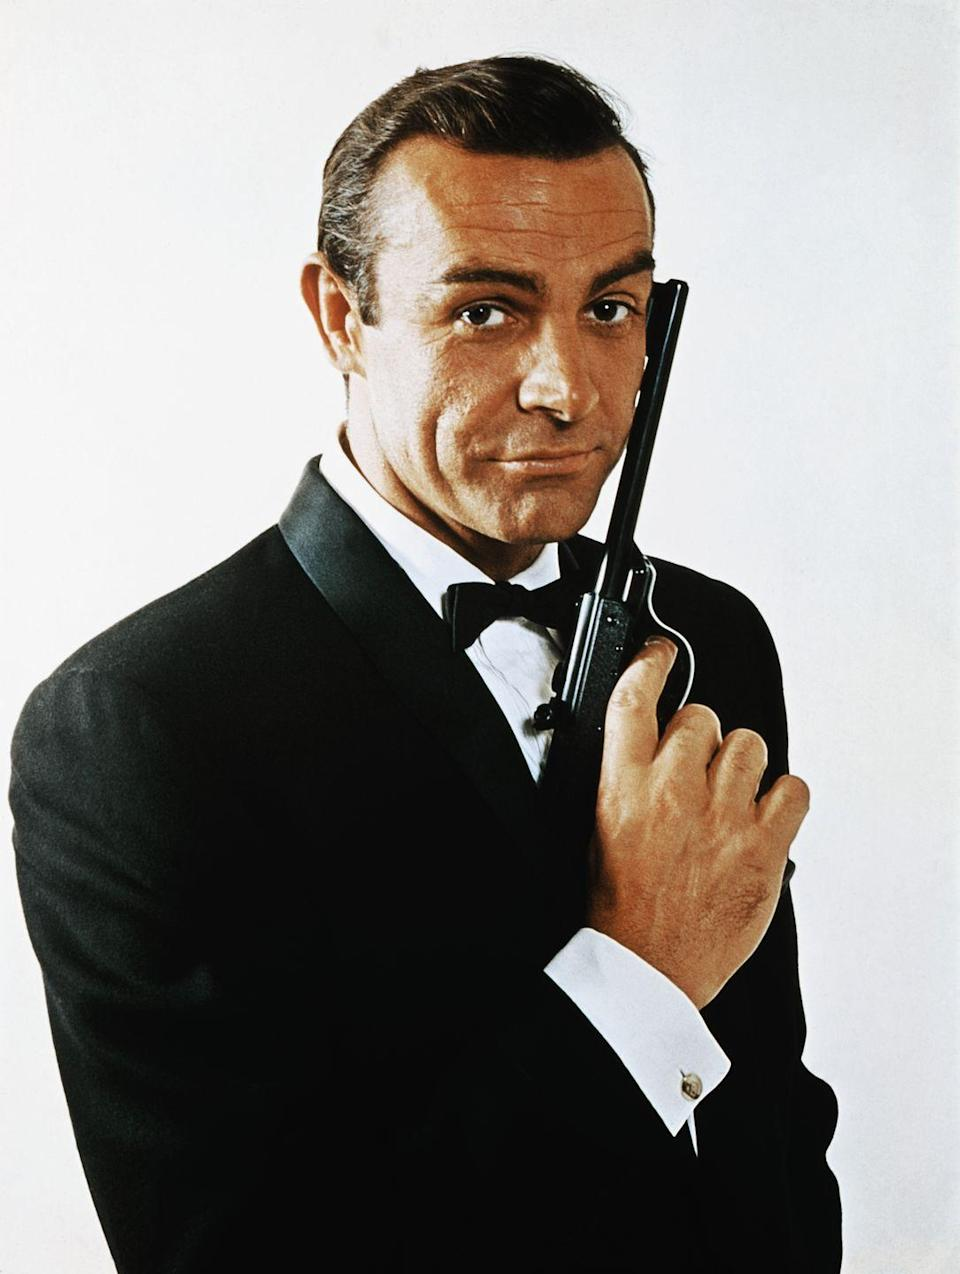 """<p>When the role of James Bond is being cast, Hollywood's youngest and finest line up for the job. But it was a job Sean Connery is known to have grown tired of and, by the end, despised. In a 1965 <em><a href=""""https://time.com/4008500/sean-connery-birthday-85/"""" rel=""""nofollow noopener"""" target=""""_blank"""" data-ylk=""""slk:Playboy"""" class=""""link rapid-noclick-resp"""">Playboy </a></em><a href=""""https://time.com/4008500/sean-connery-birthday-85/"""" rel=""""nofollow noopener"""" target=""""_blank"""" data-ylk=""""slk:interview"""" class=""""link rapid-noclick-resp"""">interview</a>, the actor shared that he was """"fed up to here with the whole Bond bit.""""</p>"""